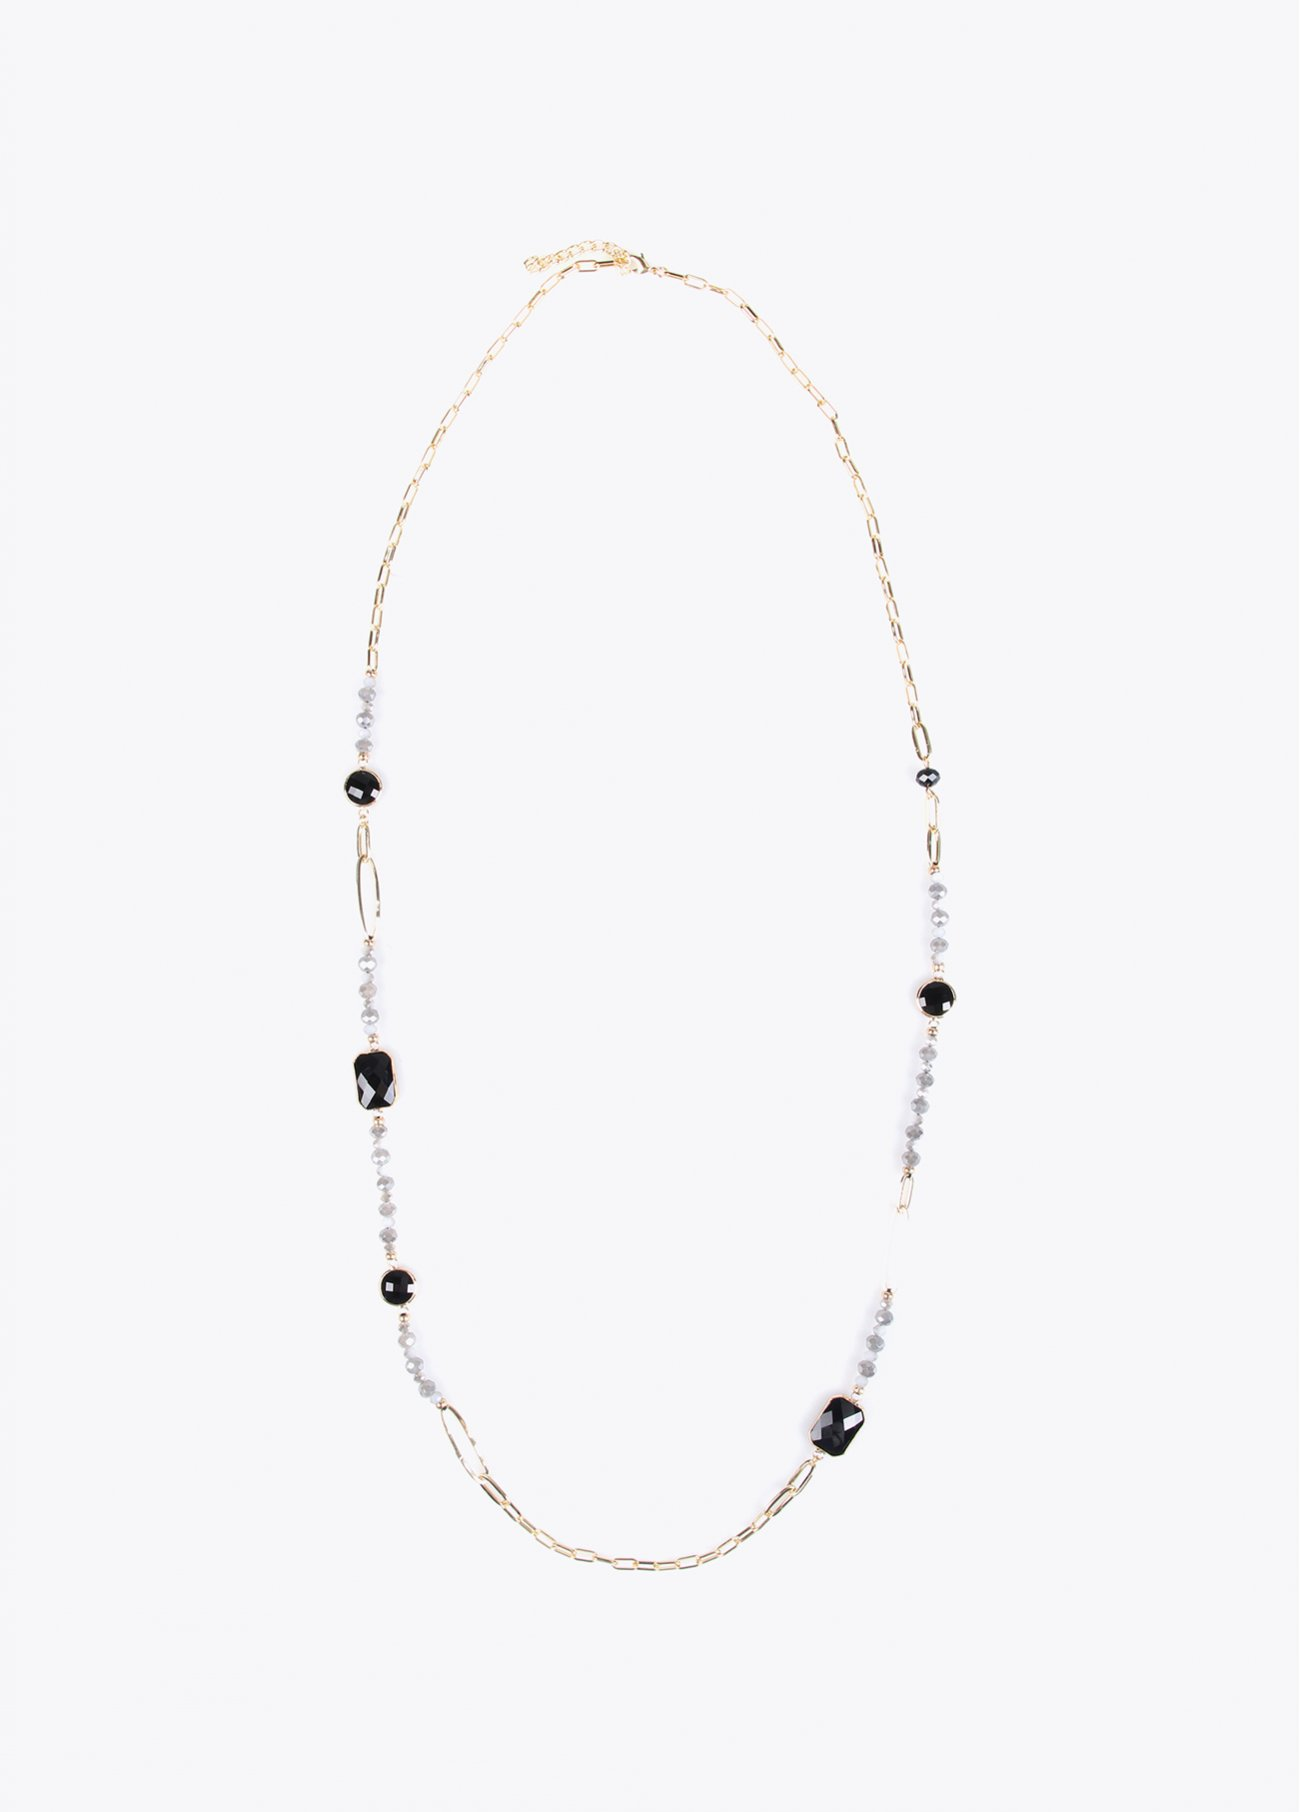 Long necklace with chain, faux pearls an